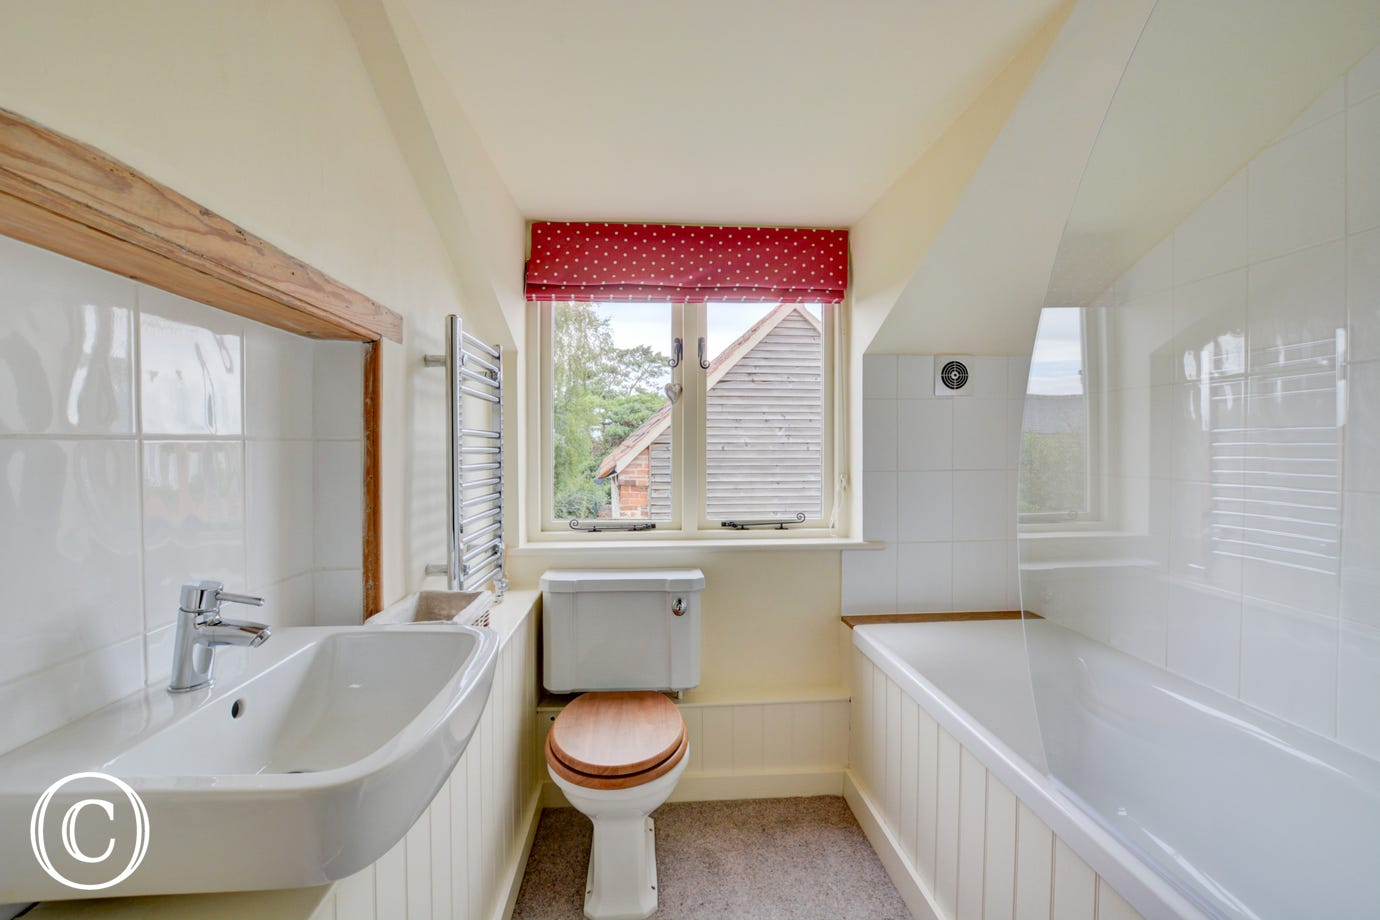 Bathroom with bath, over bath shower, washbasin and wc